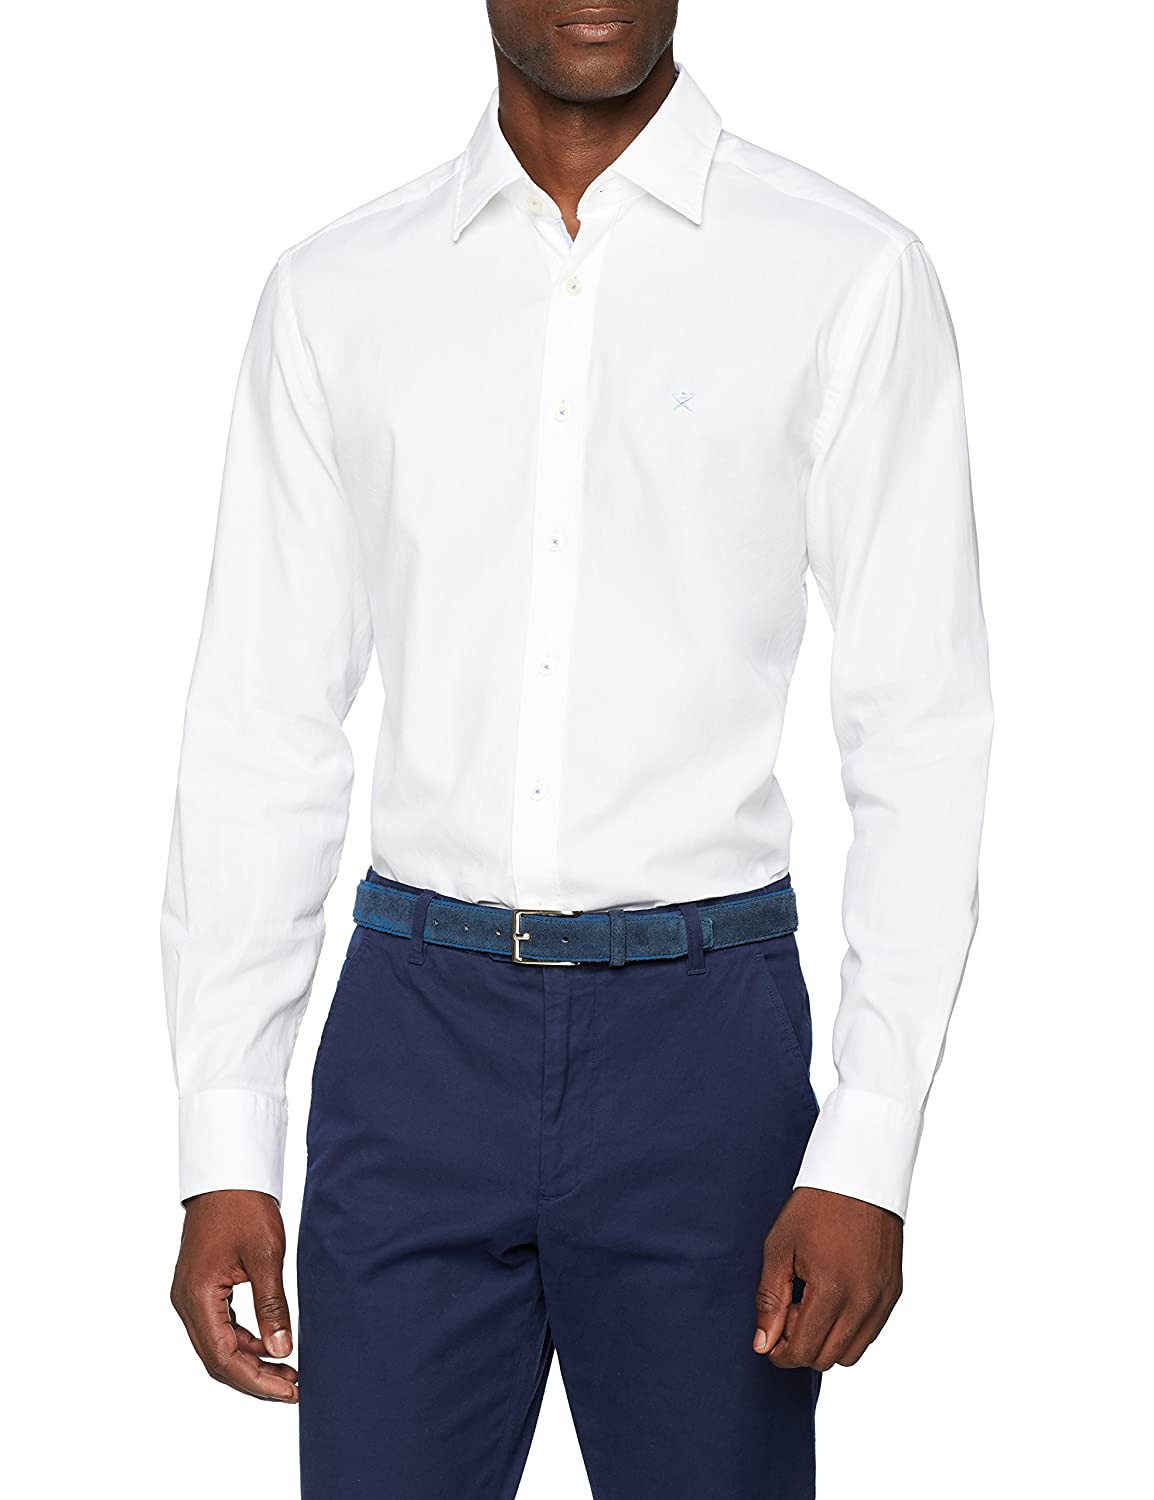 Hackett London Wht Texture Multi Trim Camisa para Hombre